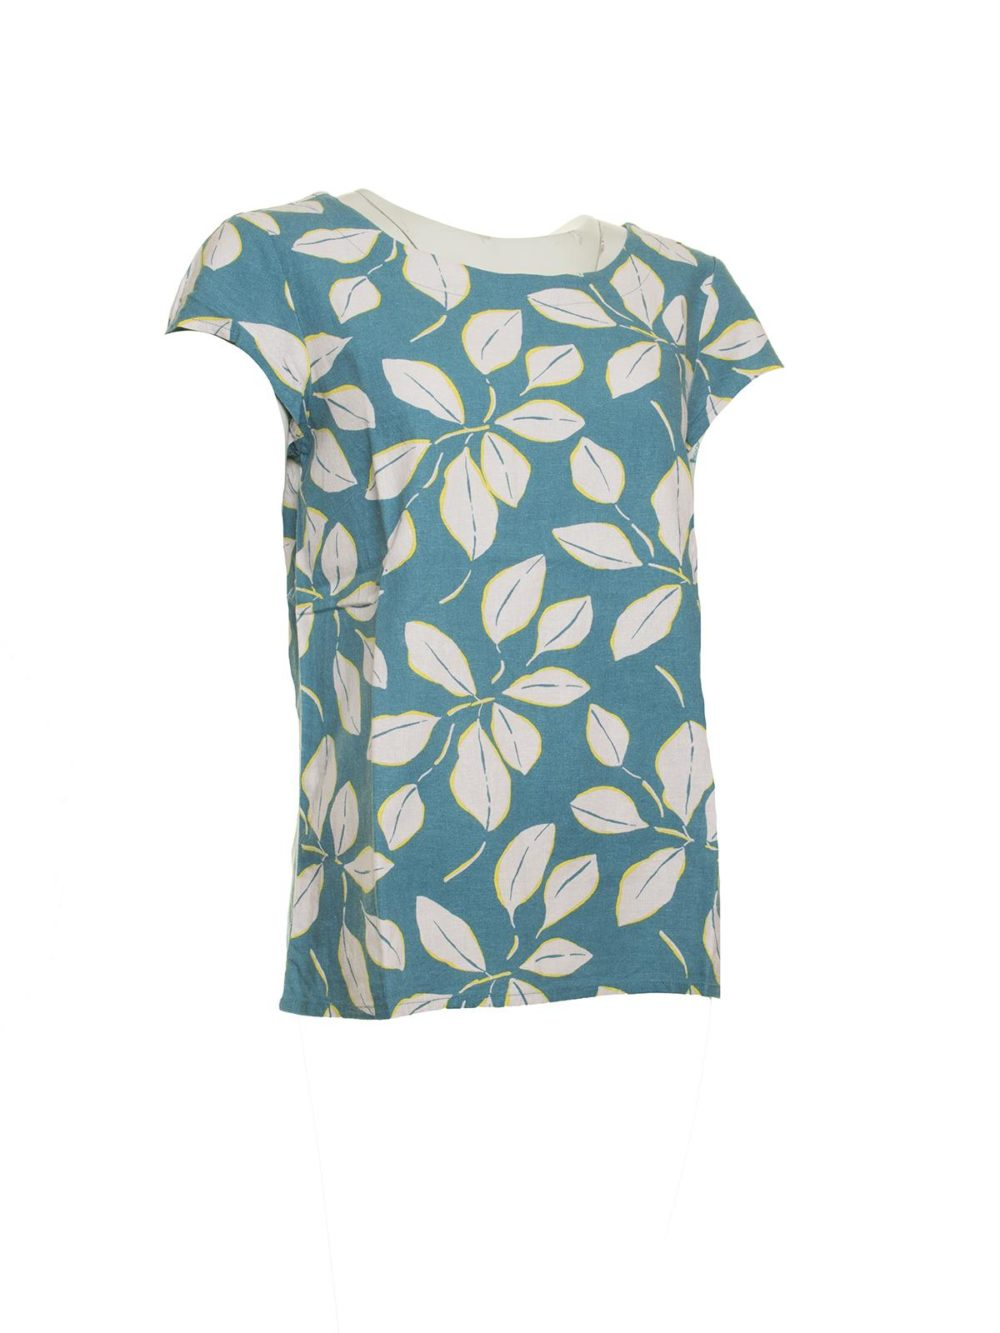 Sun and Shade Top Leaf Lily and Me Katie Kerr Women's Clothing